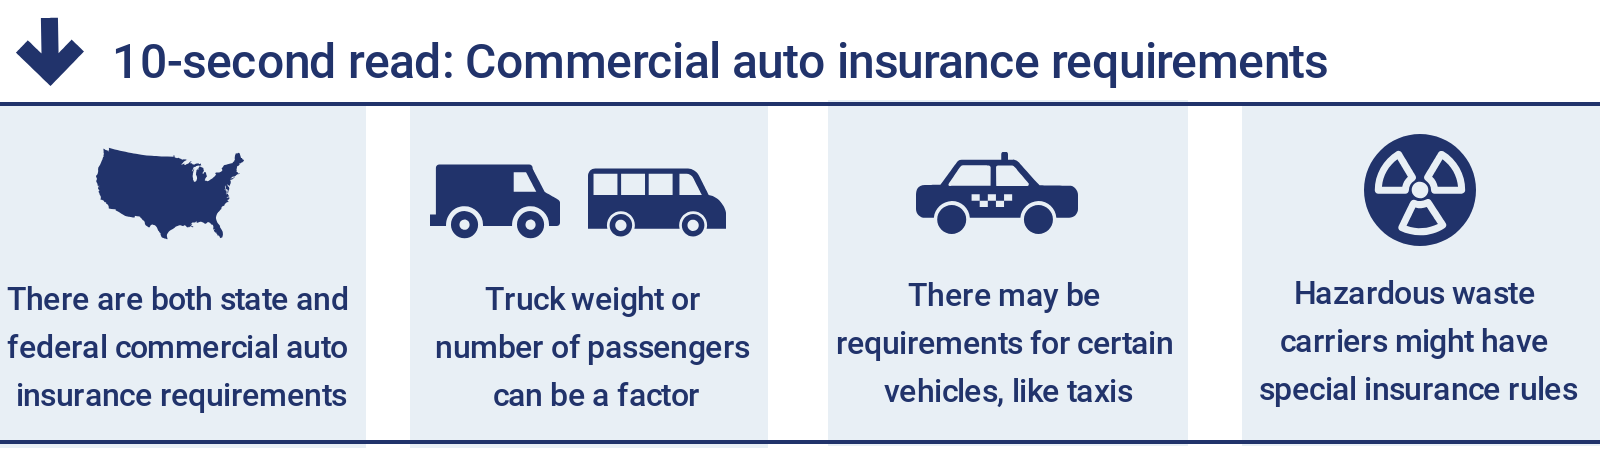 Commercial Auto Insurance Requirements By State